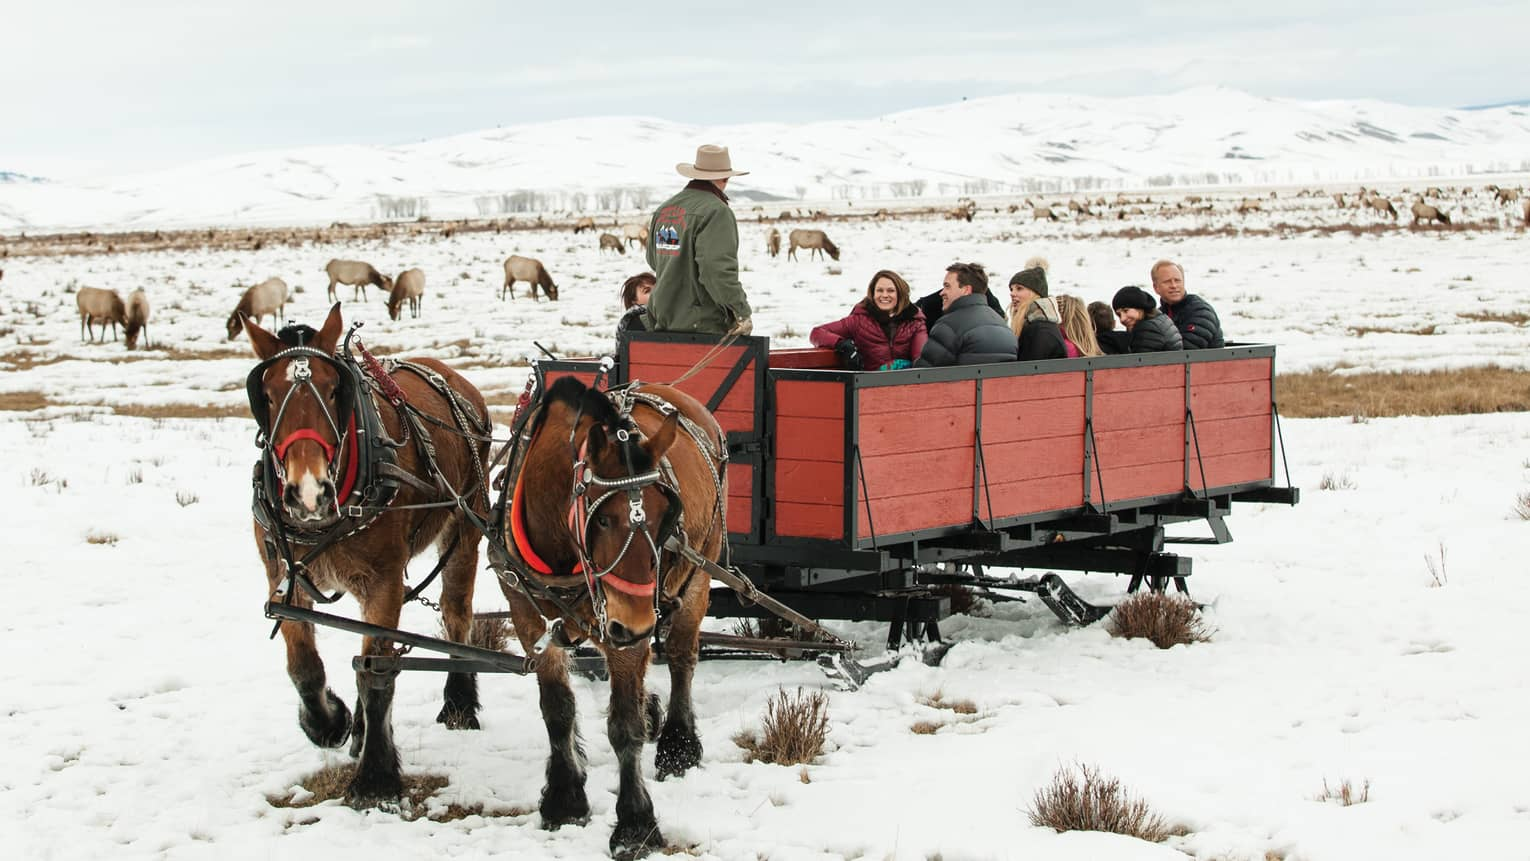 Group of friends in large red sleigh pulled by two horses, elk grazing on snow in background